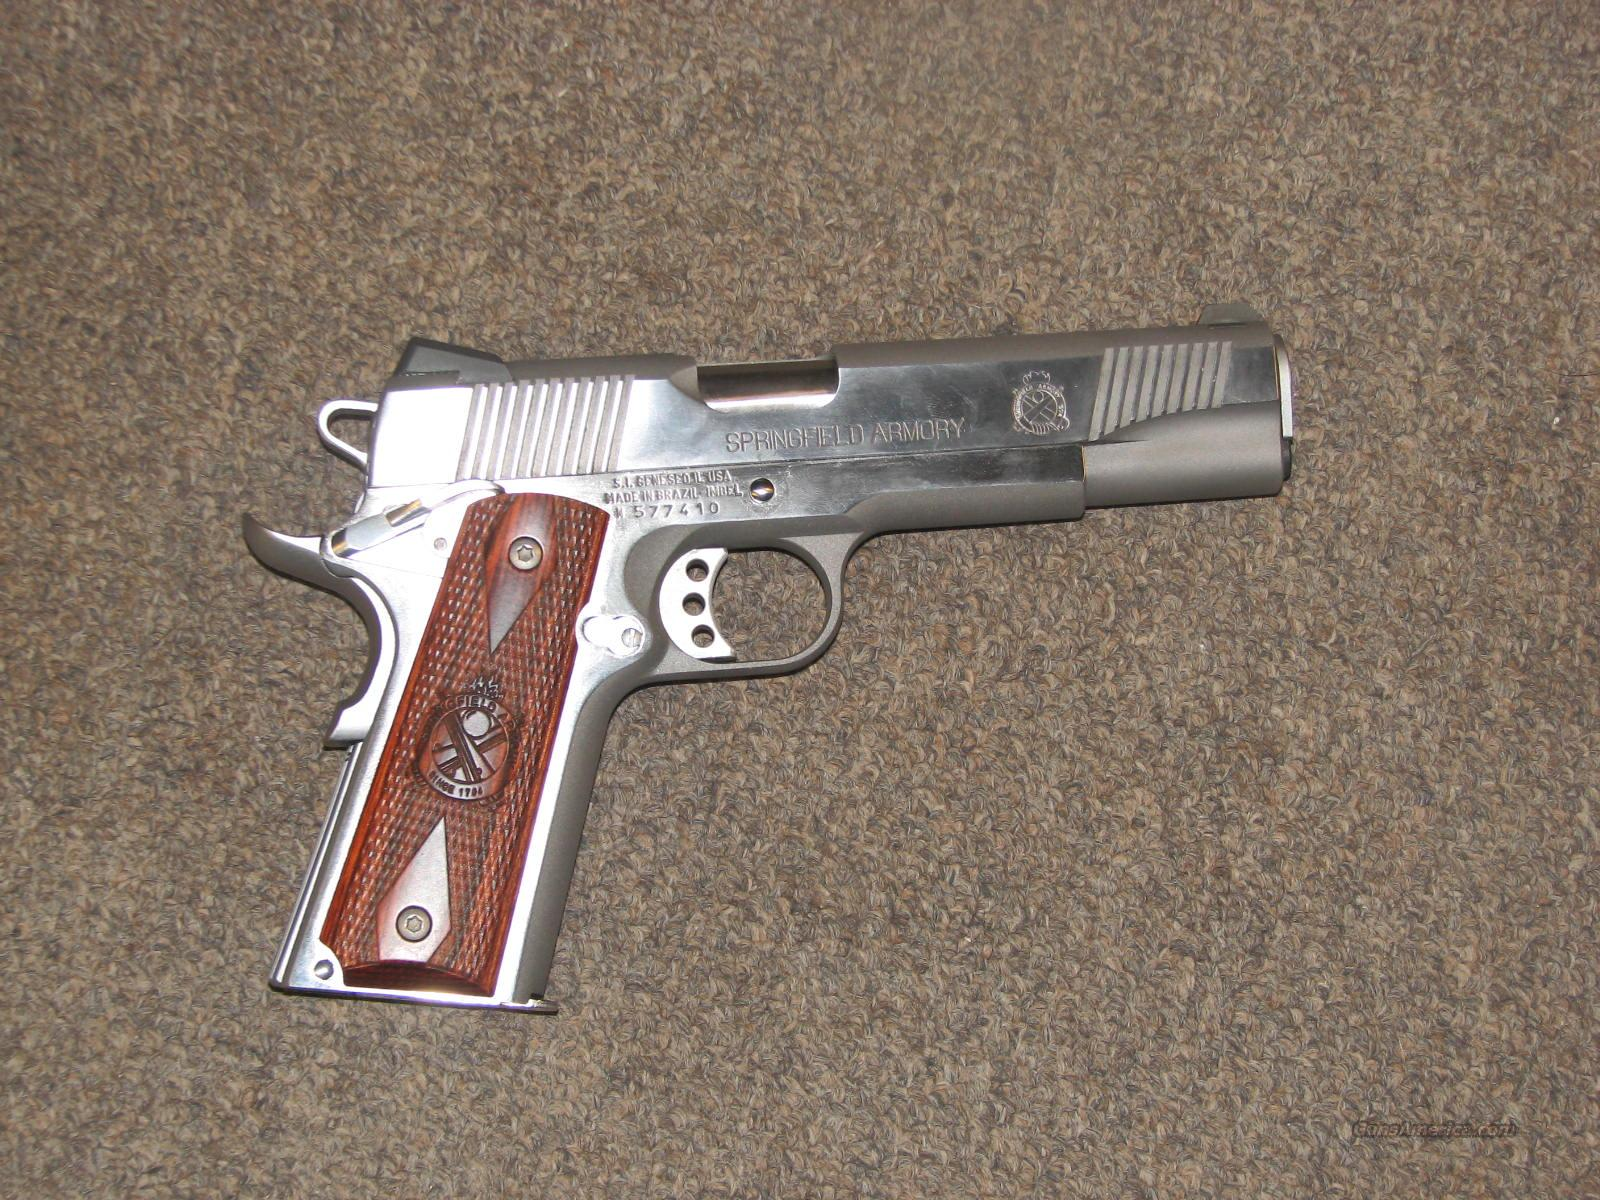 SPRINGFIELD 1911-A1 LOADED STAINLESS .45 ACP - NEW  Guns > Pistols > Springfield Armory Pistols > 1911 Type